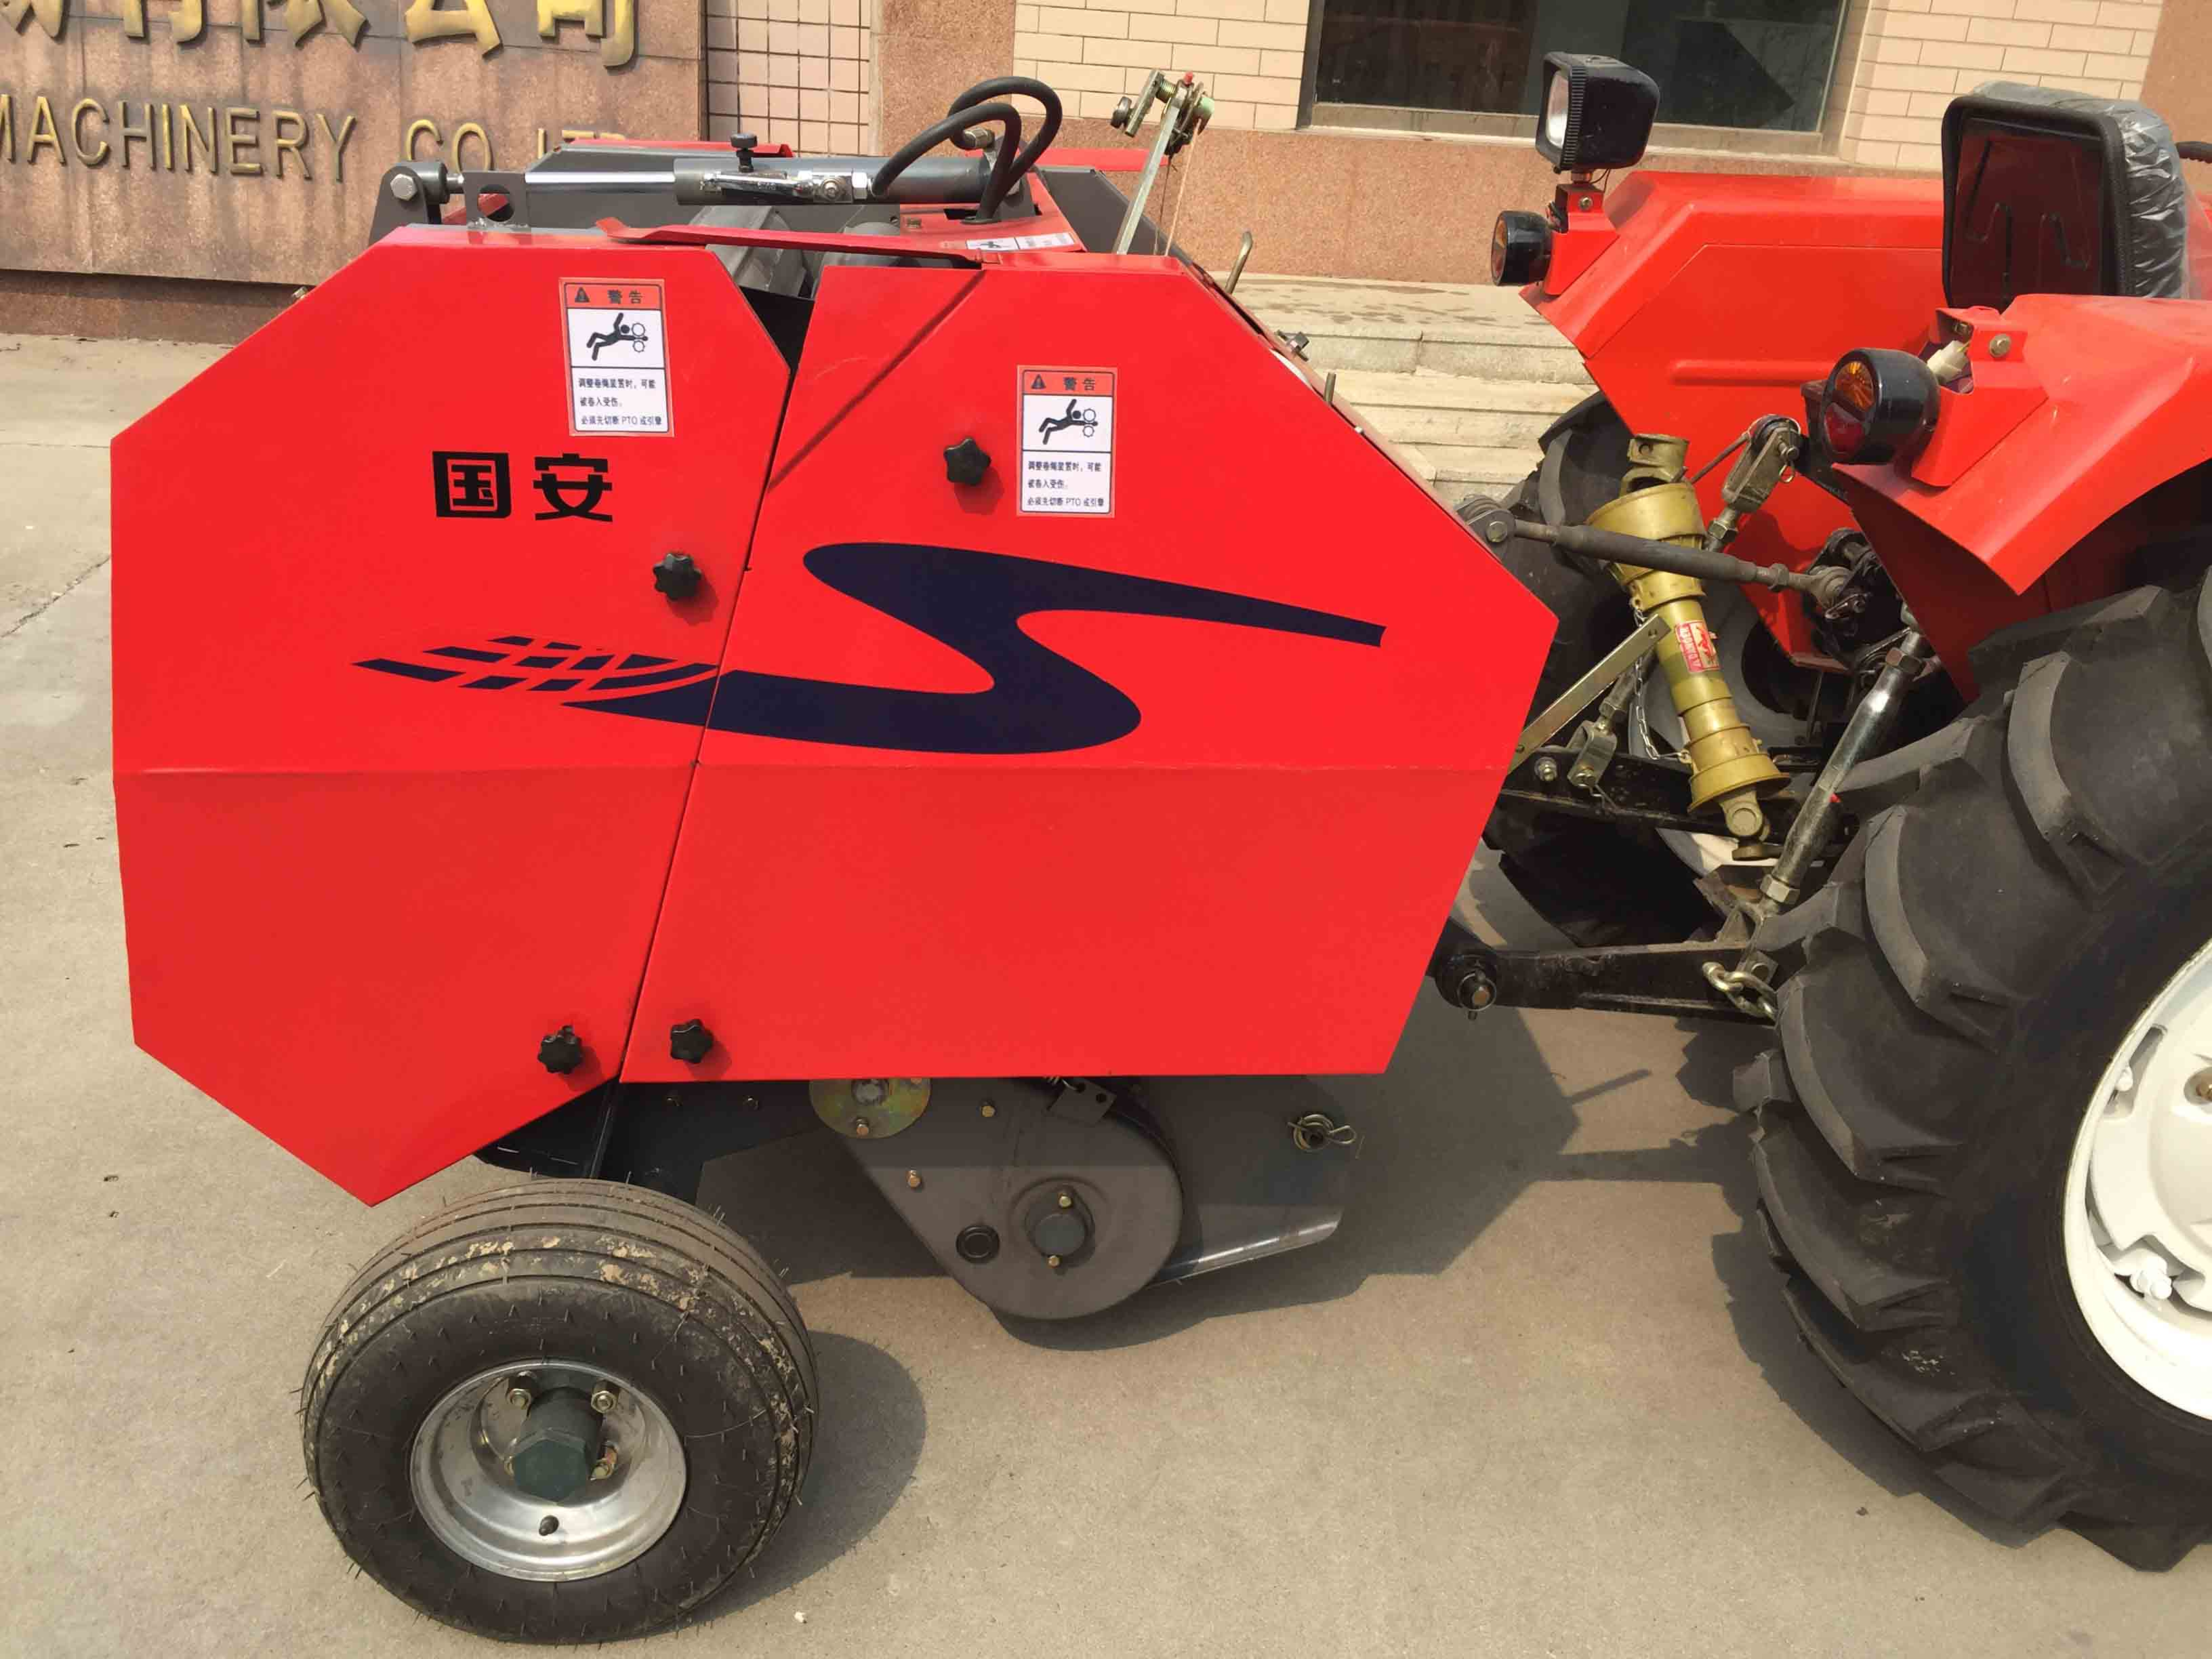 Wheat straw Trusser machine with Tractor mounted